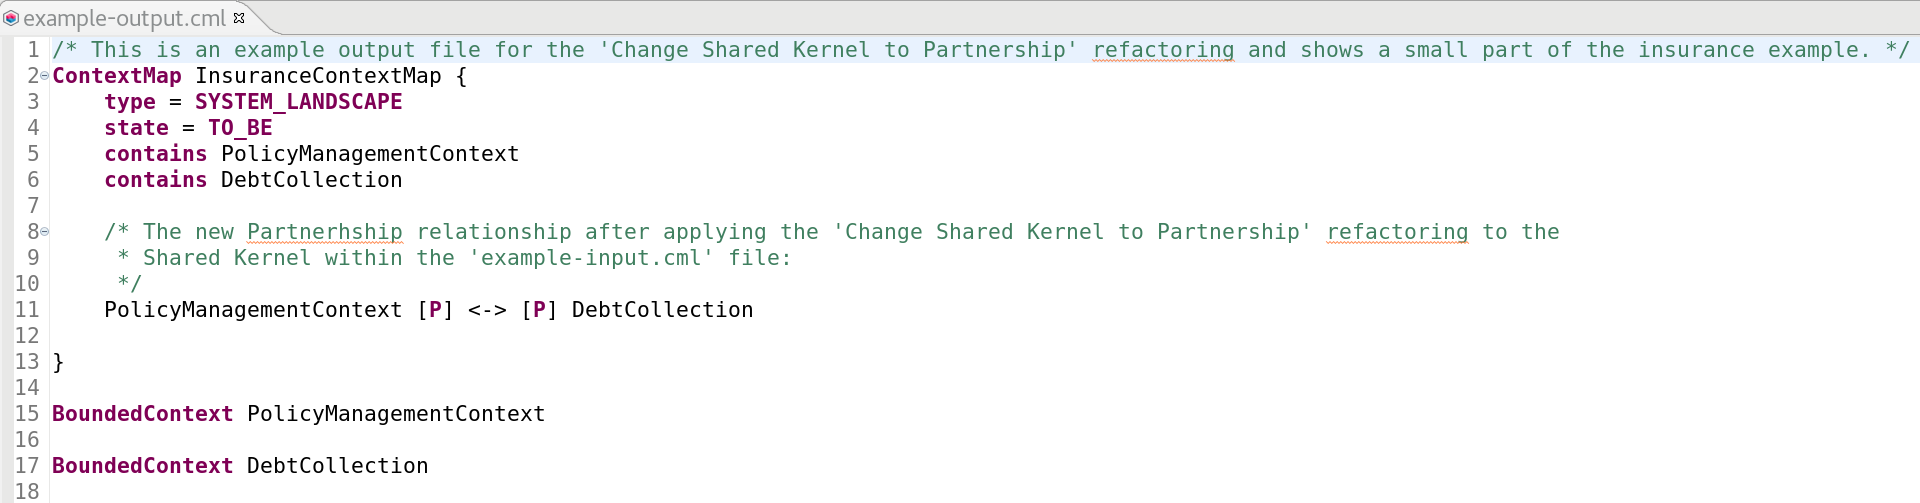 Change Shared Kernel to Partnership Example Output